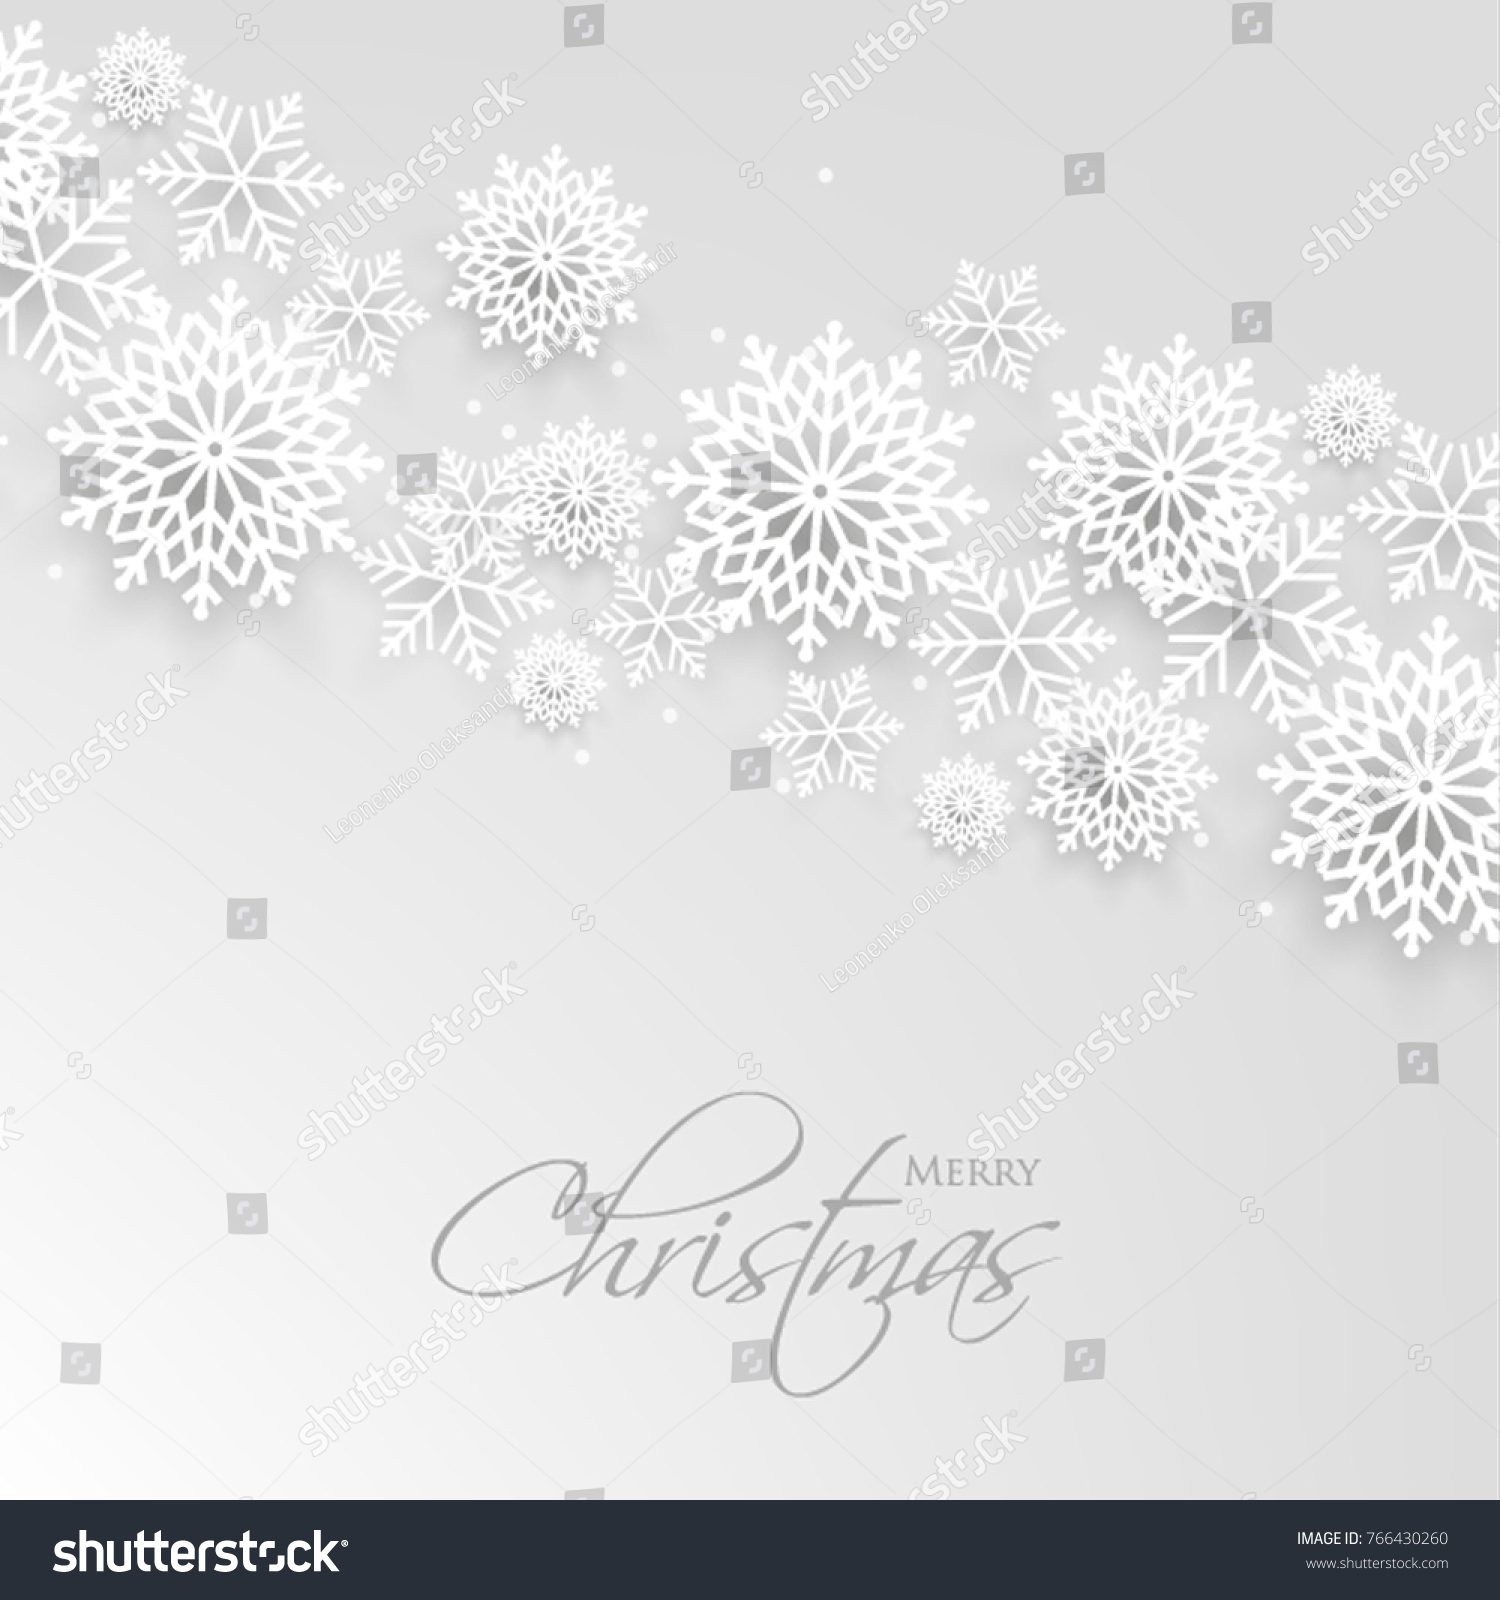 Merry Christmas Party Invitation Template Snowflake Stock Vector ...